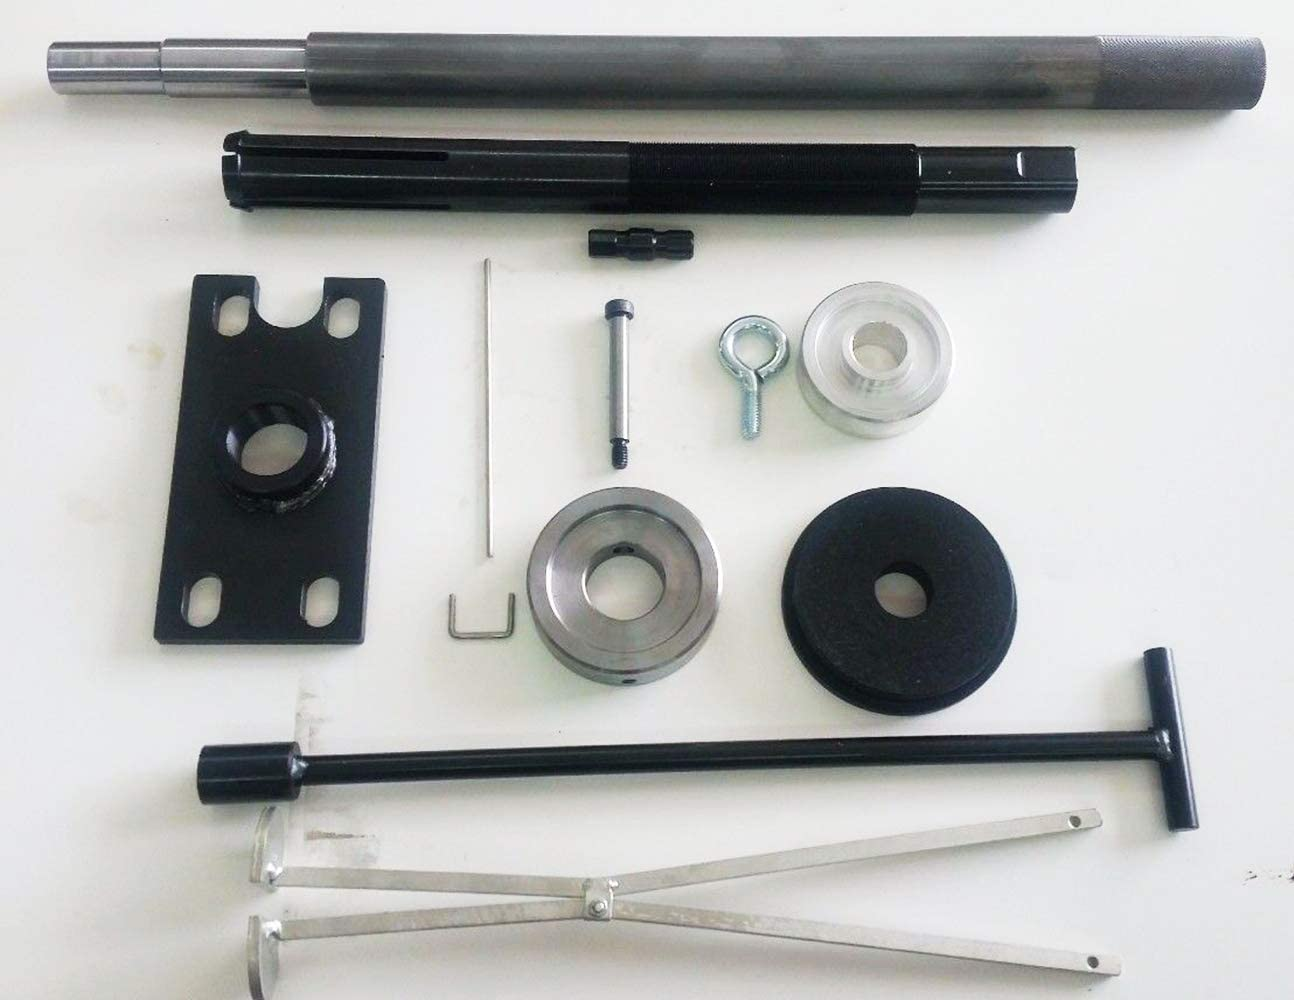 Gimbal Seal Bellow Setfor Mercruiser Volvo OMC with Hinge Pin and Bellow Expander Tool MBS Mfg Two Piece Alignment Tool